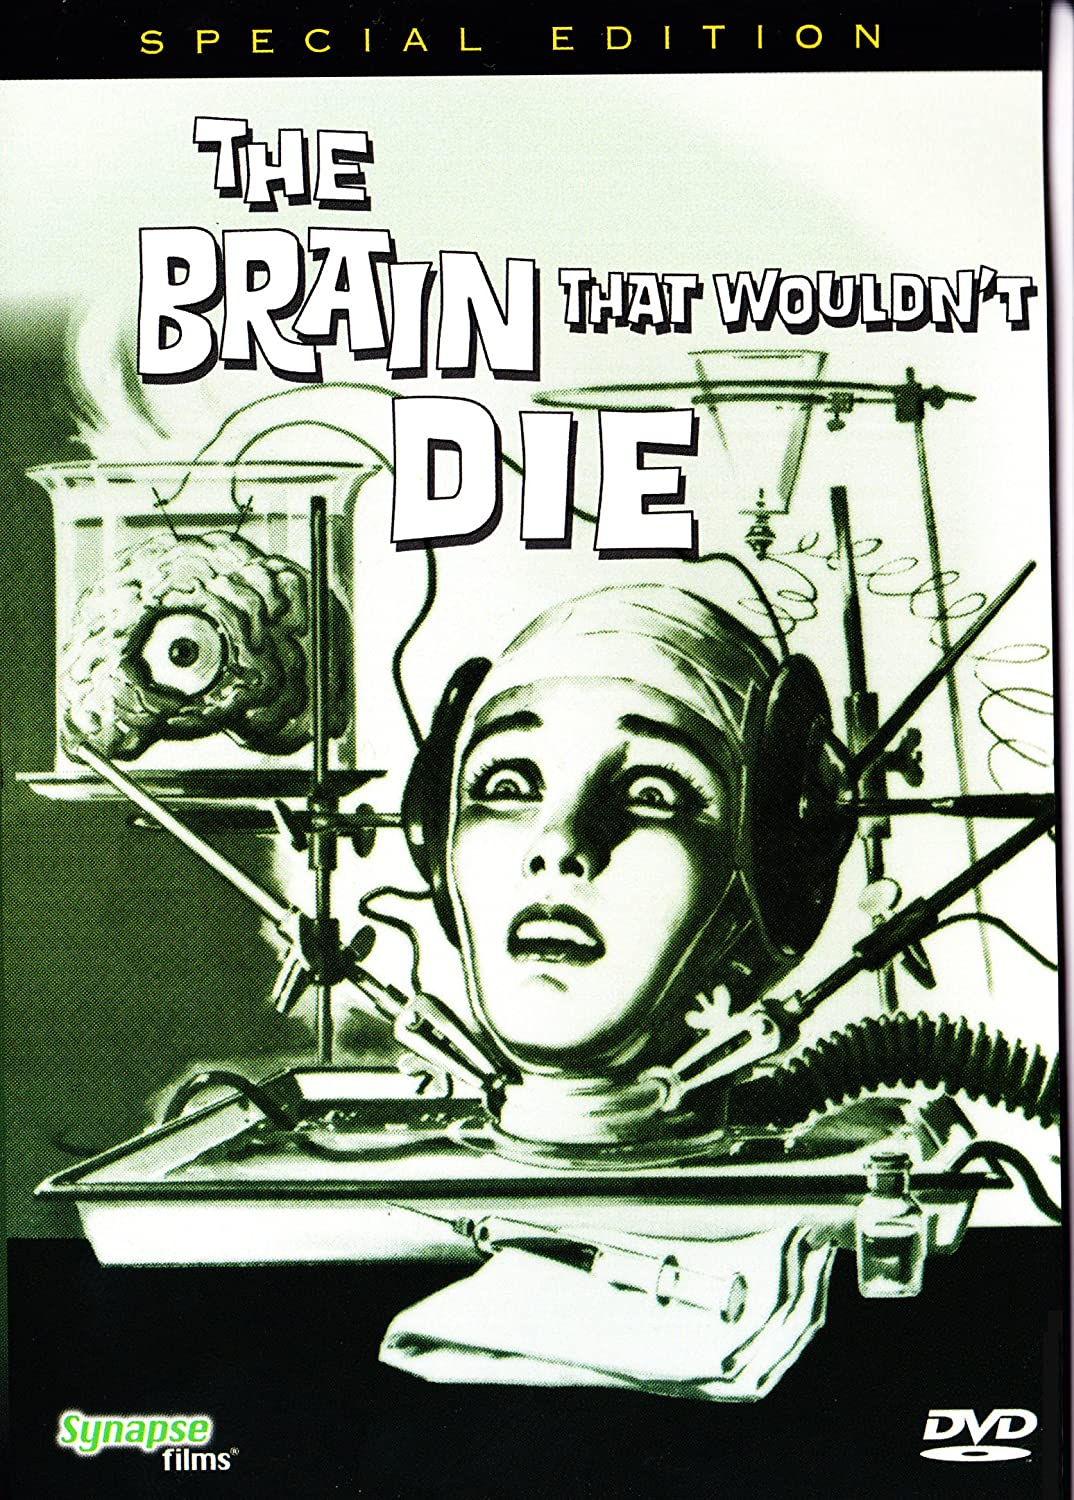 The Brain That Wouldn't Die (1962) starring Herb Evers, Virginia Leith